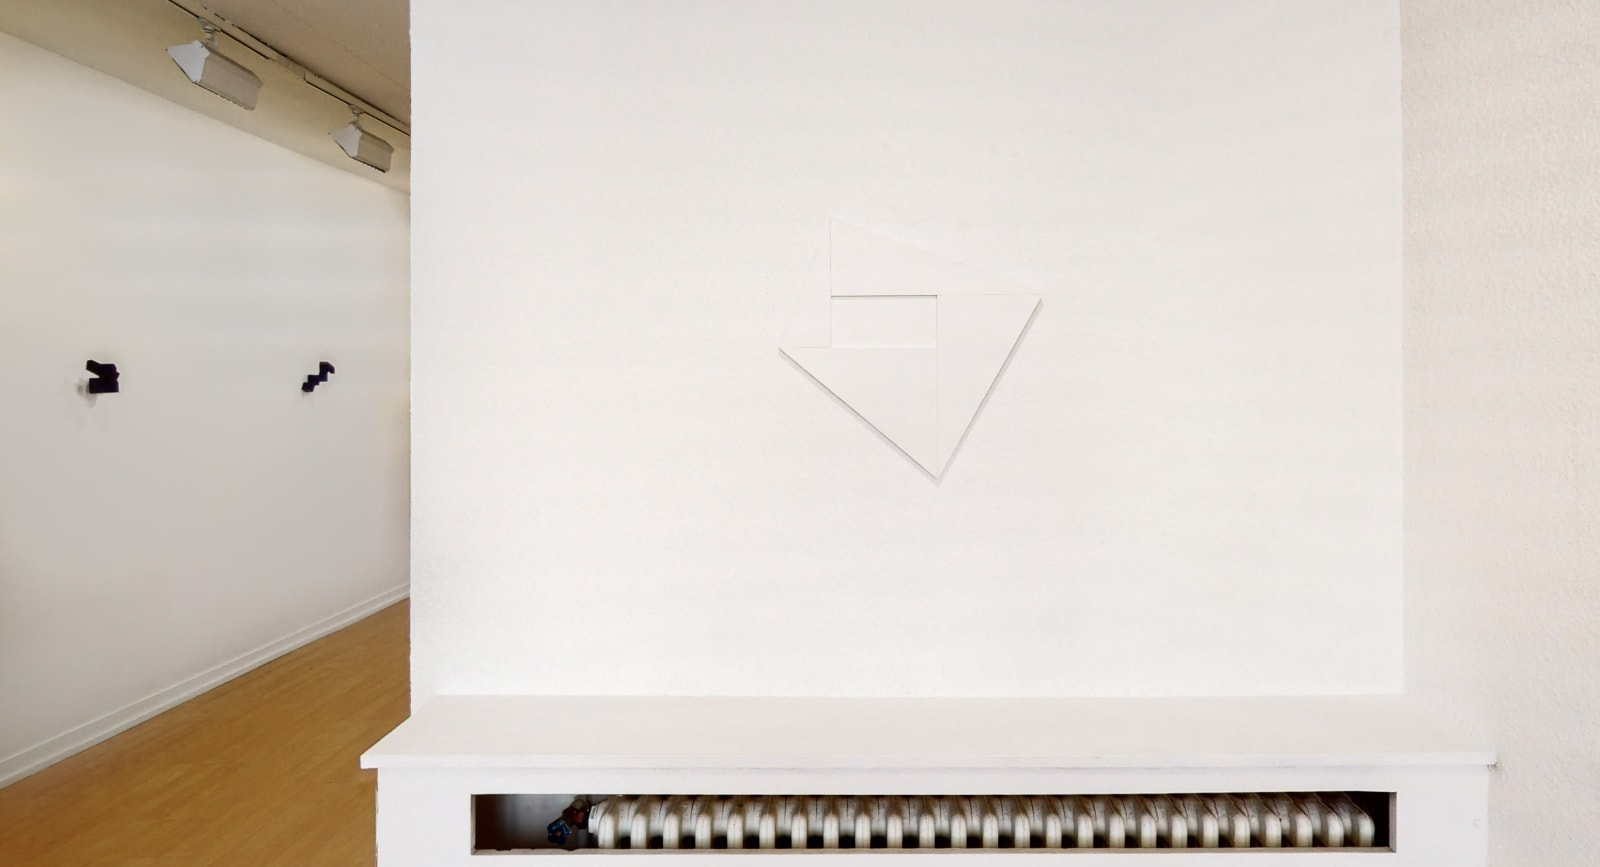 Norman Dilworth / 12121, exposition personnelle / Oniris 2021